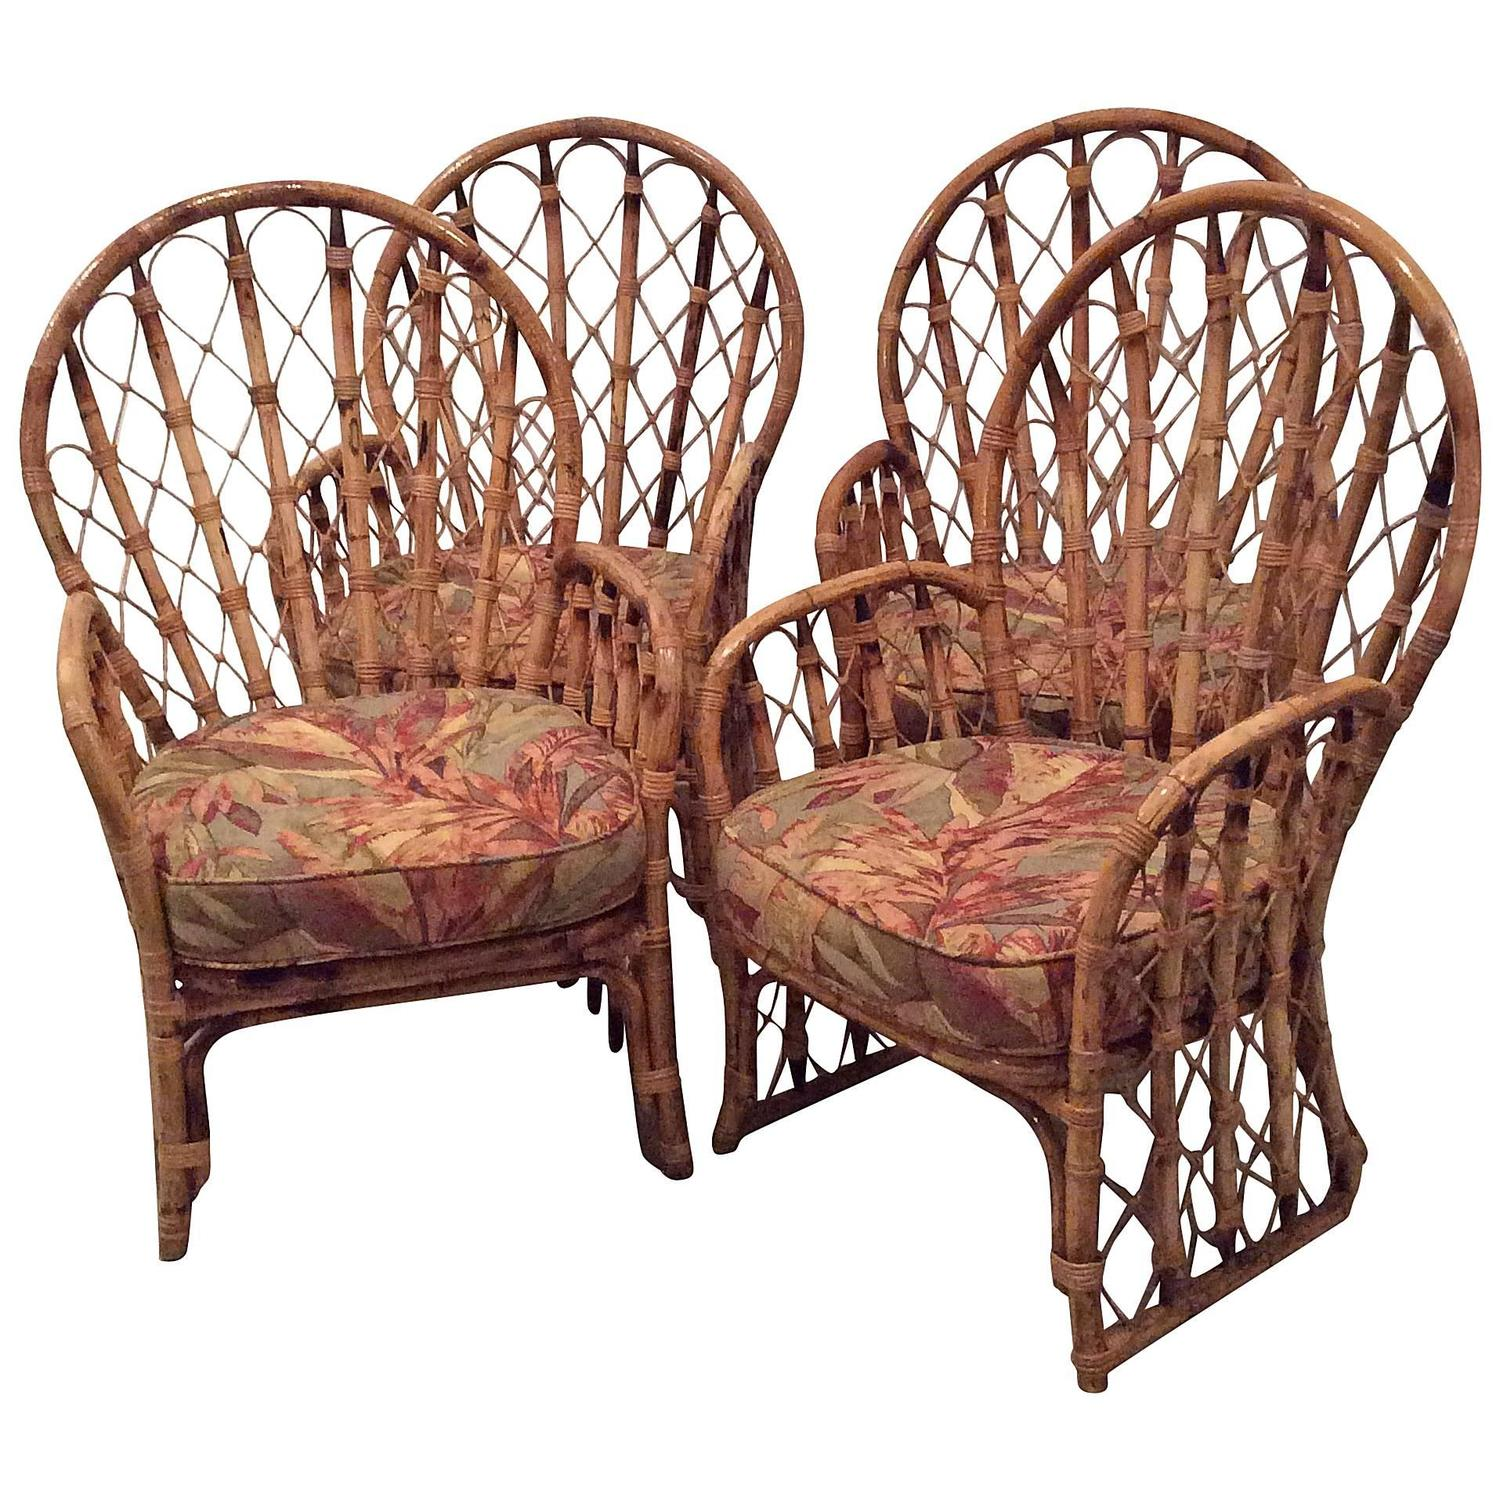 antique dining chairs value what are wwe made of rattan wicker arm vintage set 4 faux bamboo palm beach patio at 1stdibs